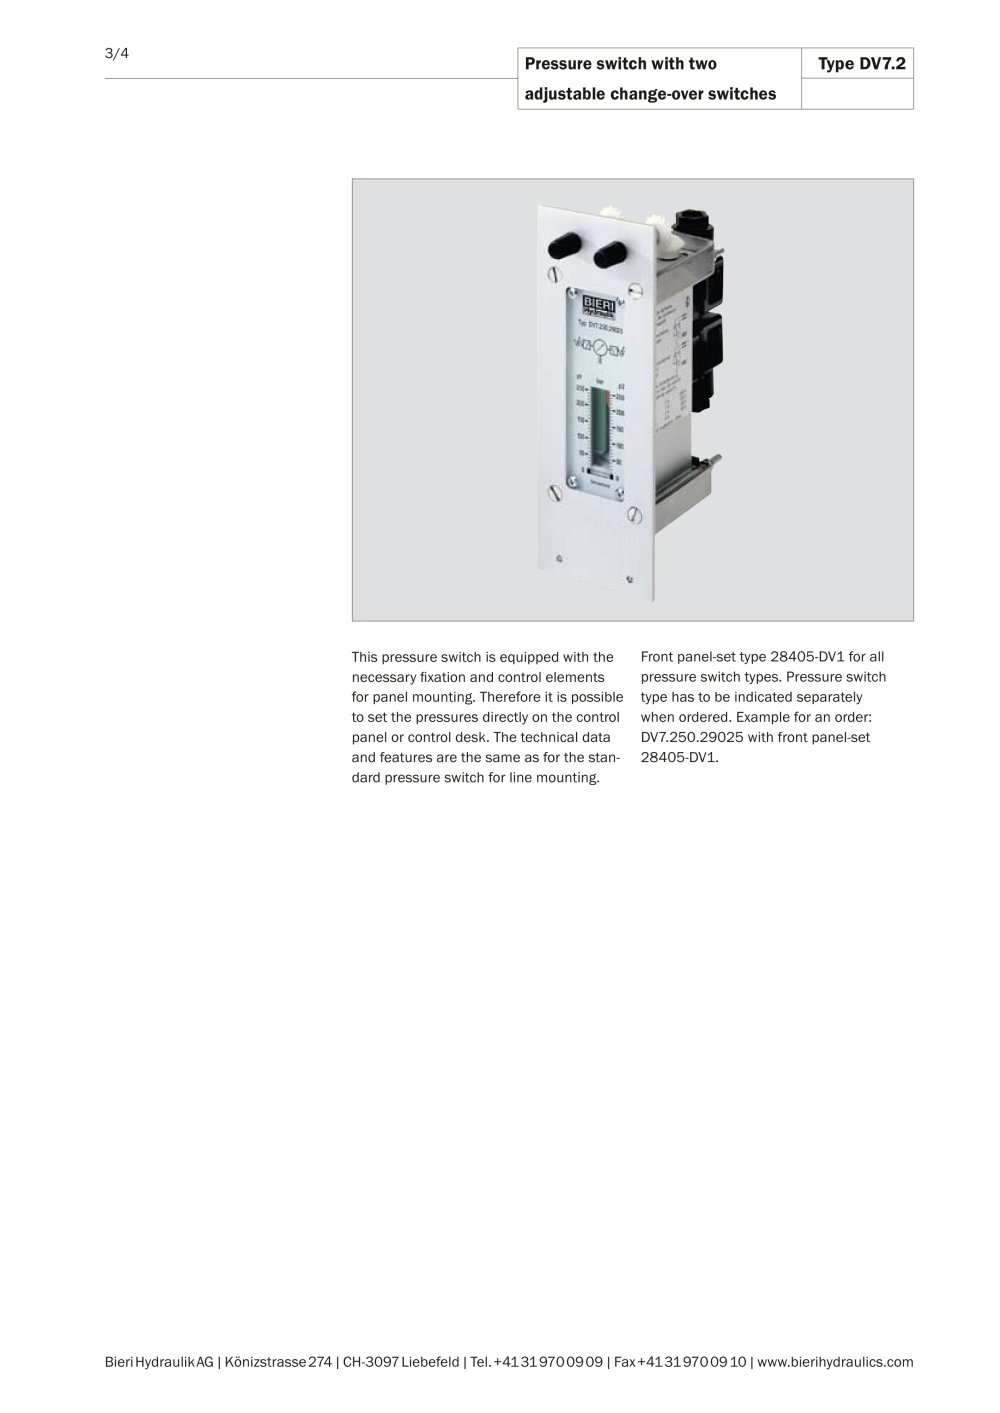 Pressure switches for panel mounting - Bieri Hydraulik - PDF ...